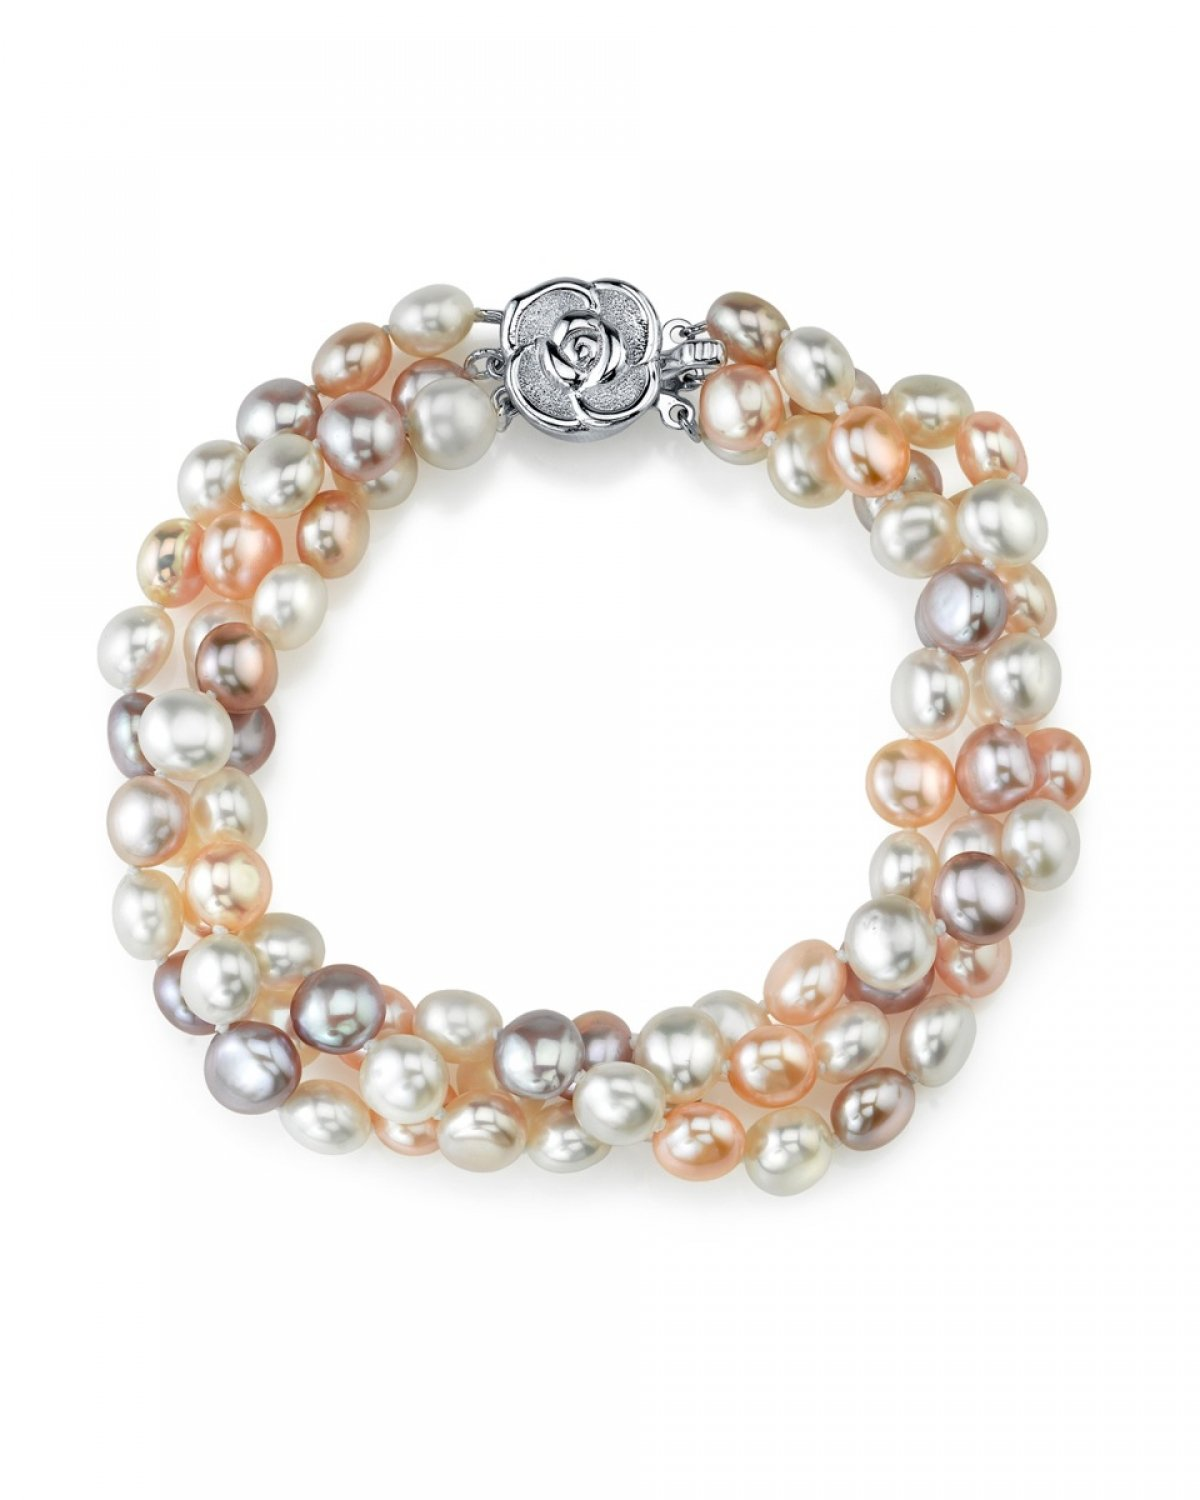 5-6mm Genuine Multicolor Freshwater Cultured Pearl Bracelet for Women